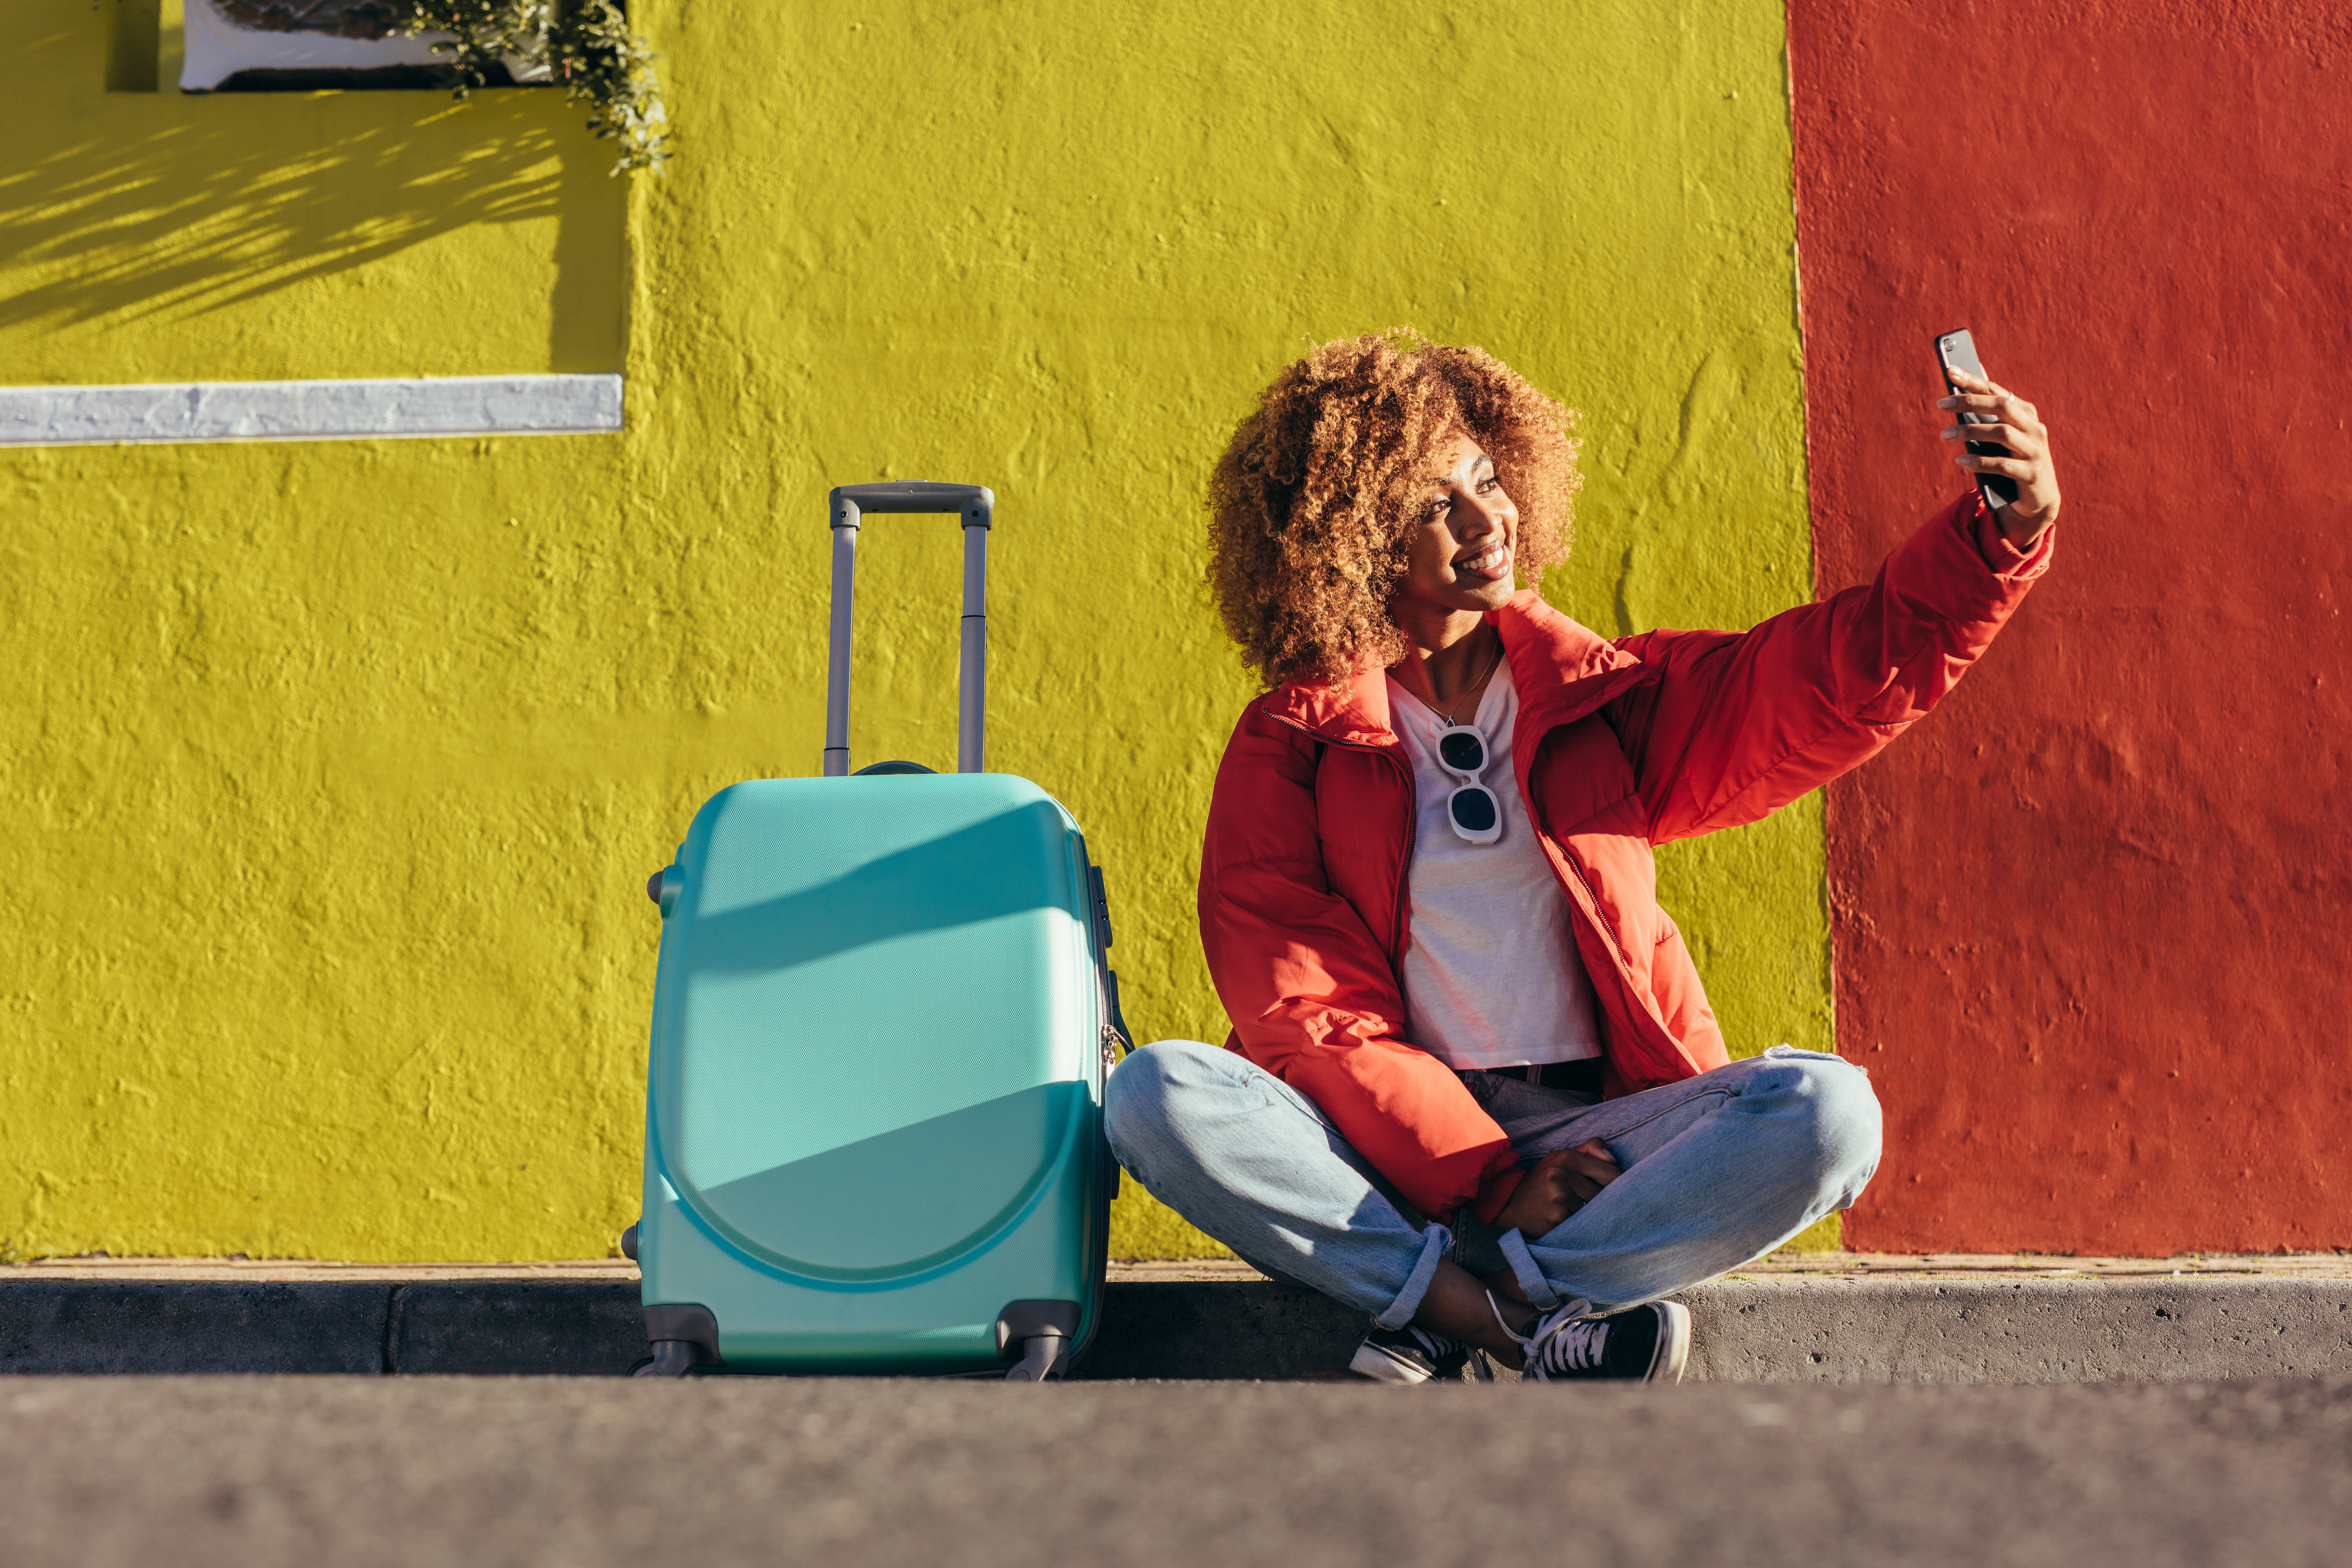 Woman taking selfie in front of a brightly colored wall next to a suitcase